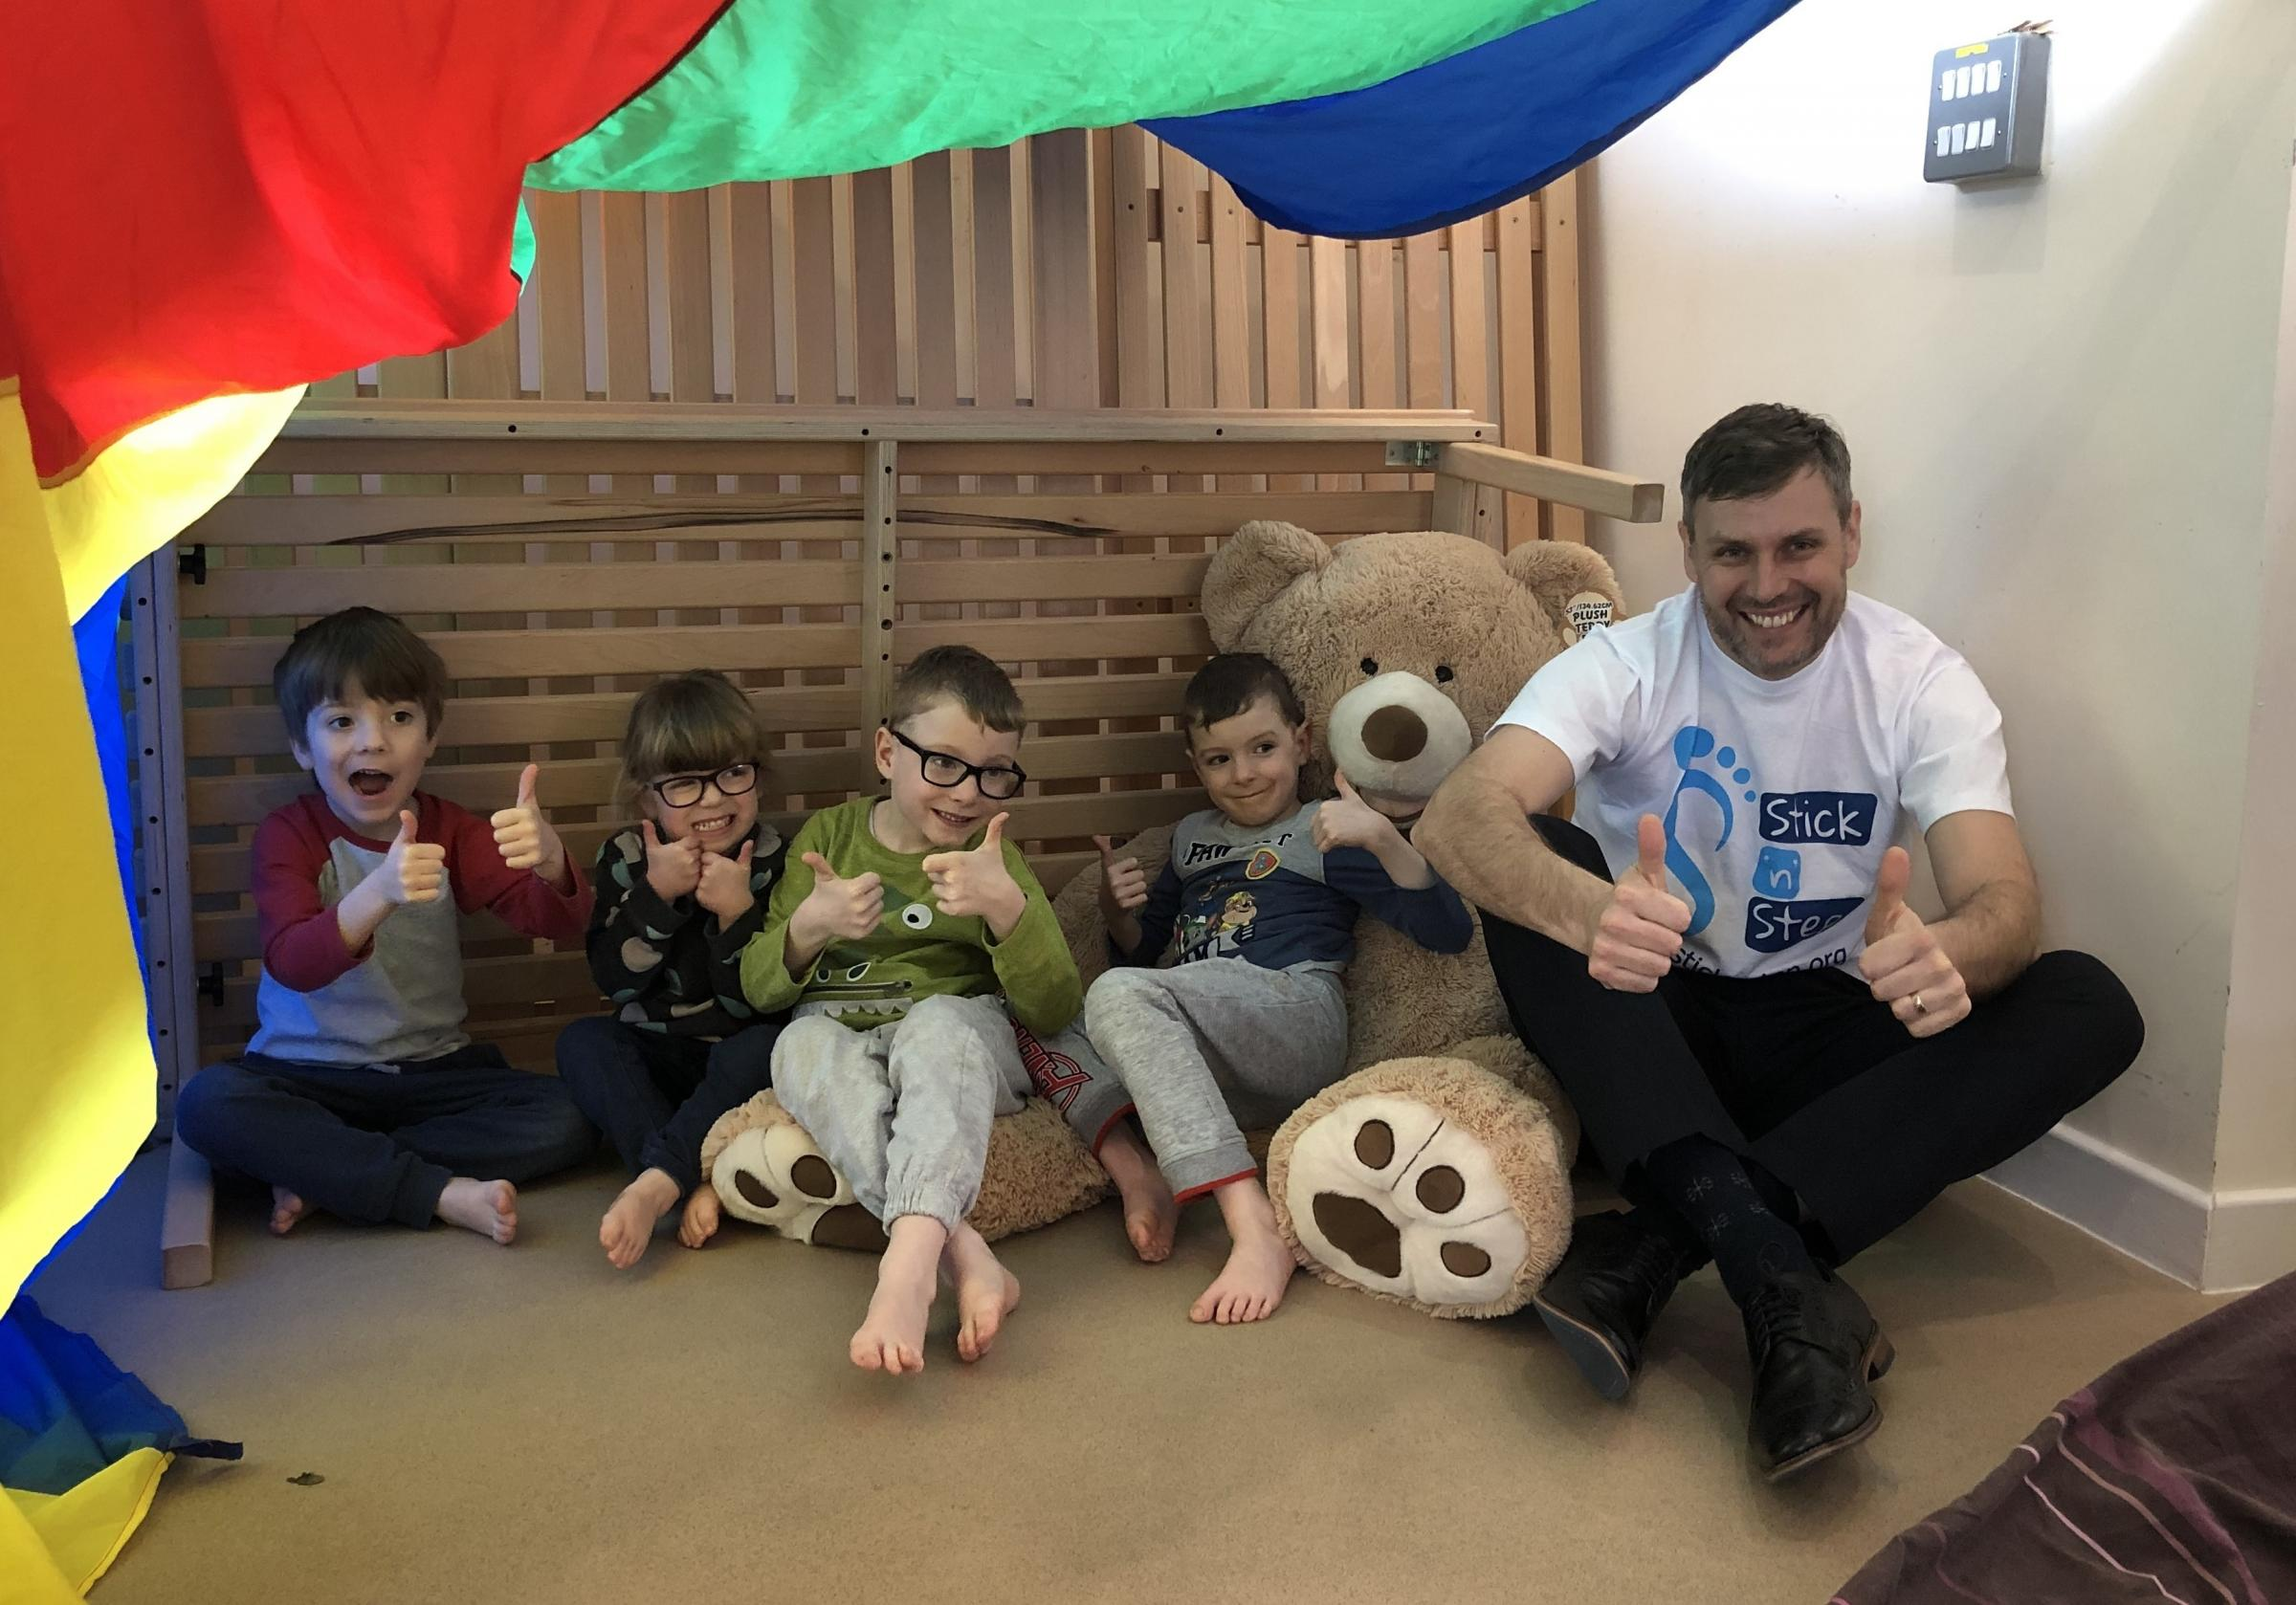 Paul Richards with children from Stick n Step